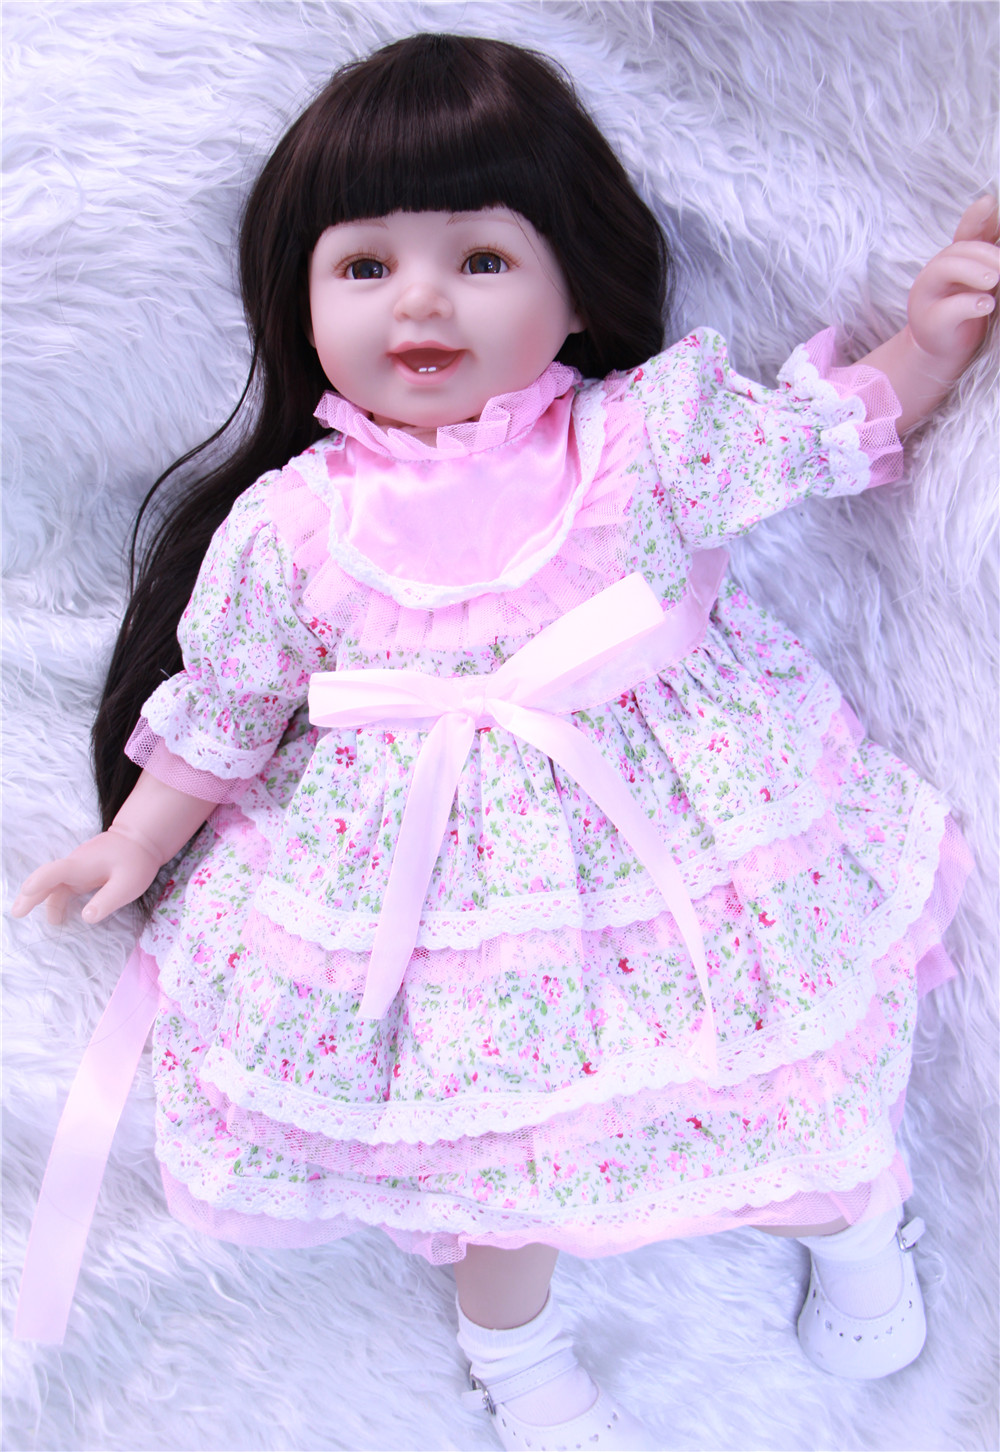 Silicone reborn dolls 22 american princess Girl Dolls  Long Hair wigs fashion Dress children gift boneca reborn realistaSilicone reborn dolls 22 american princess Girl Dolls  Long Hair wigs fashion Dress children gift boneca reborn realista